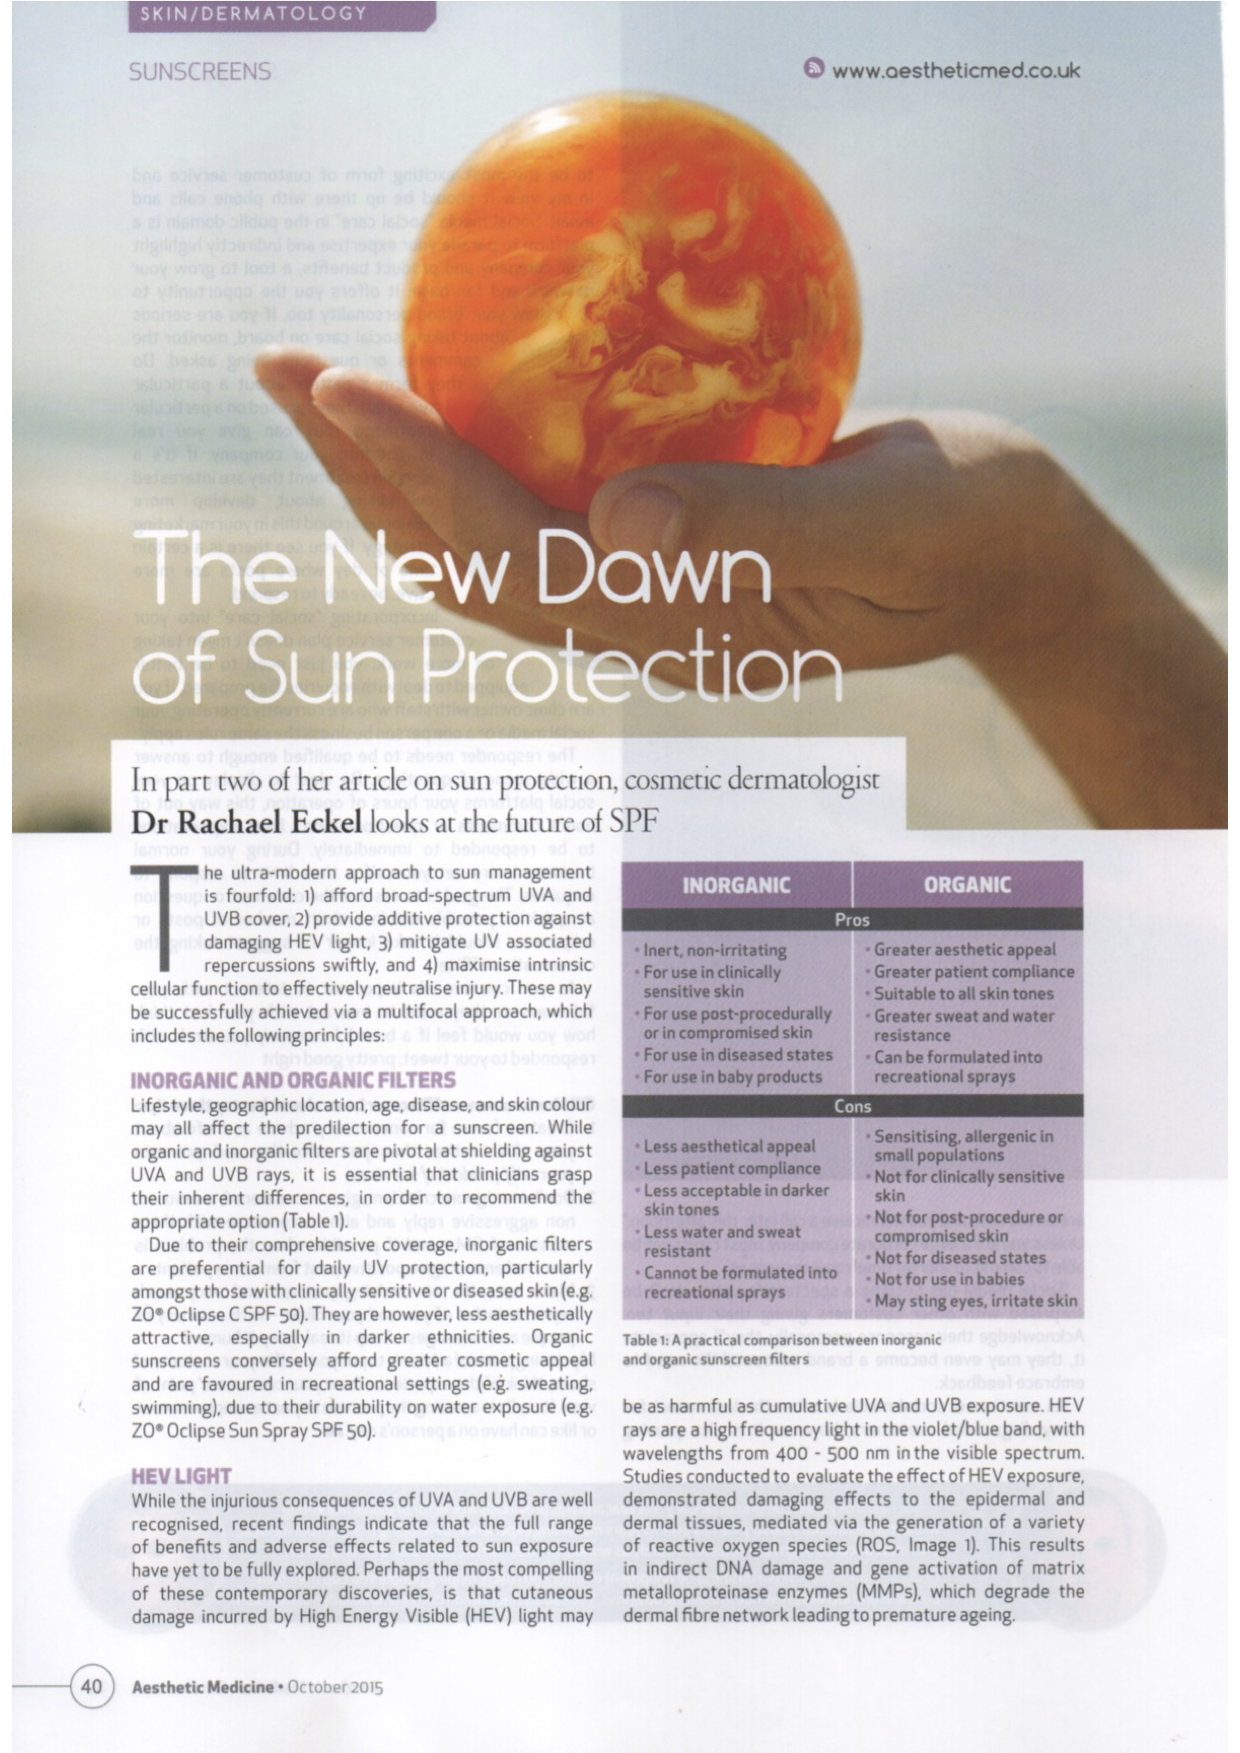 The New Dawn of Sun Protection copy2.jpg